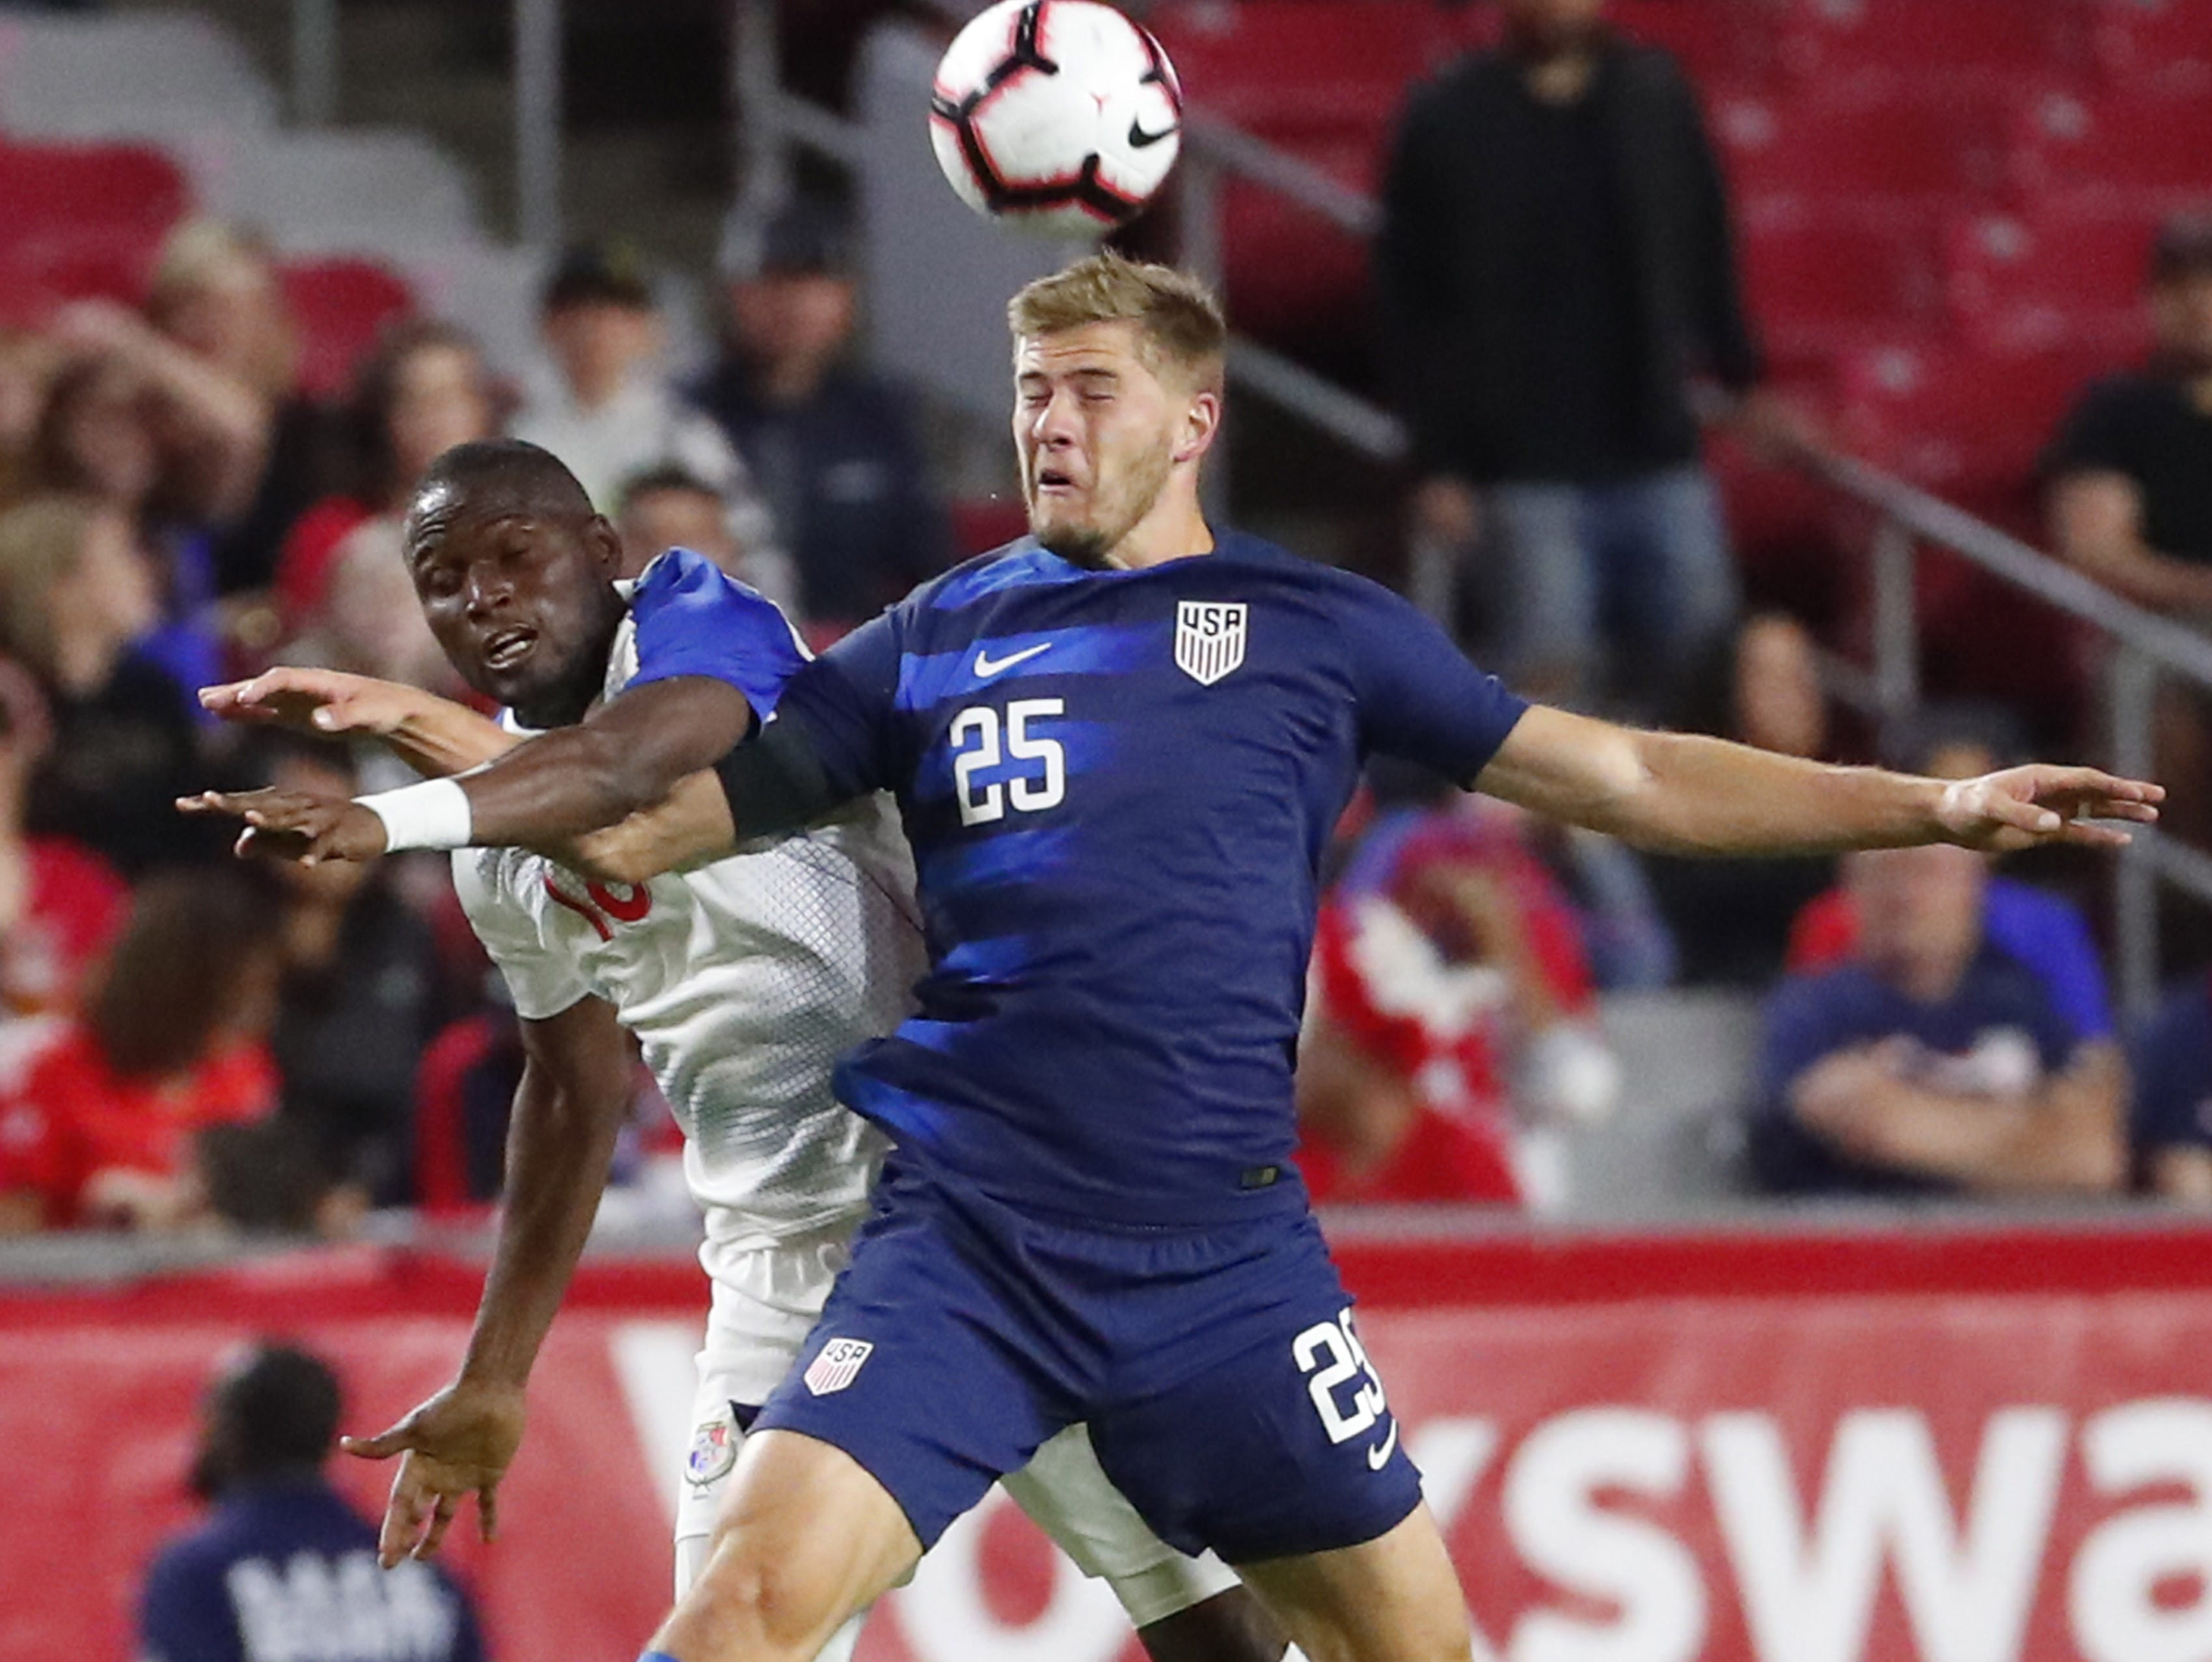 U.S. defender Walker Zimmerman (25) heads the ball while defended by Panama forward Abdiel Arroyo (18) during the first half of a friendly on Jan. 27, 2019 in Glendale, Ariz.